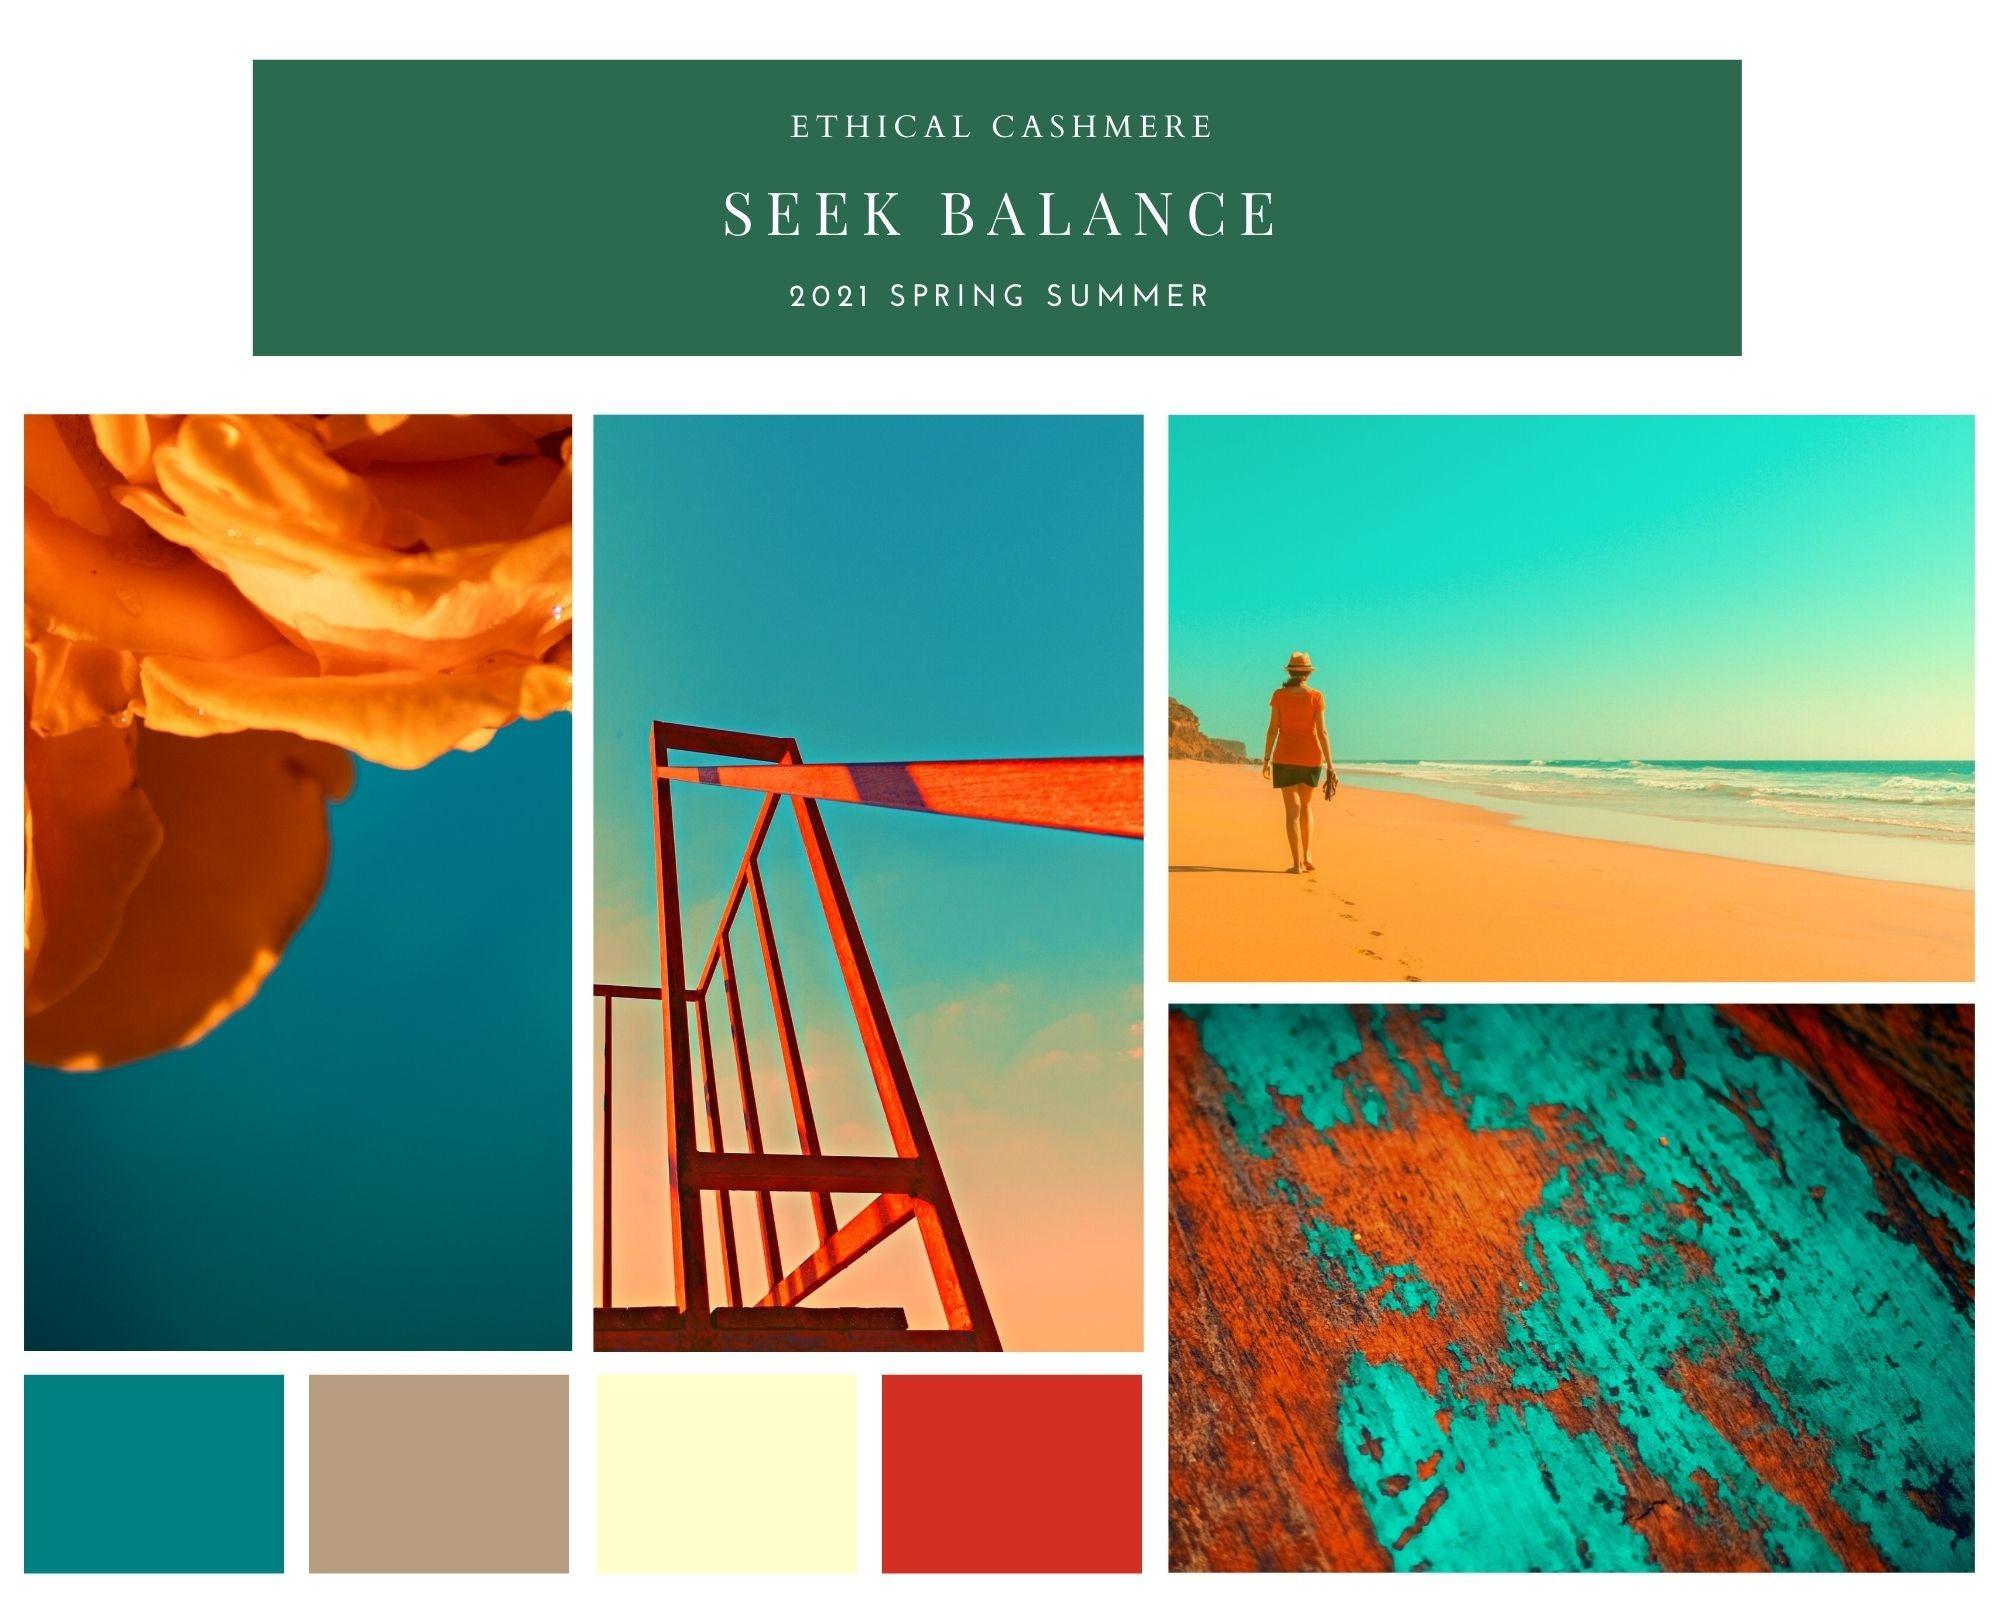 Mood board inspired by teal and orange themes for Ethical Cashmere's Spring 2021 season